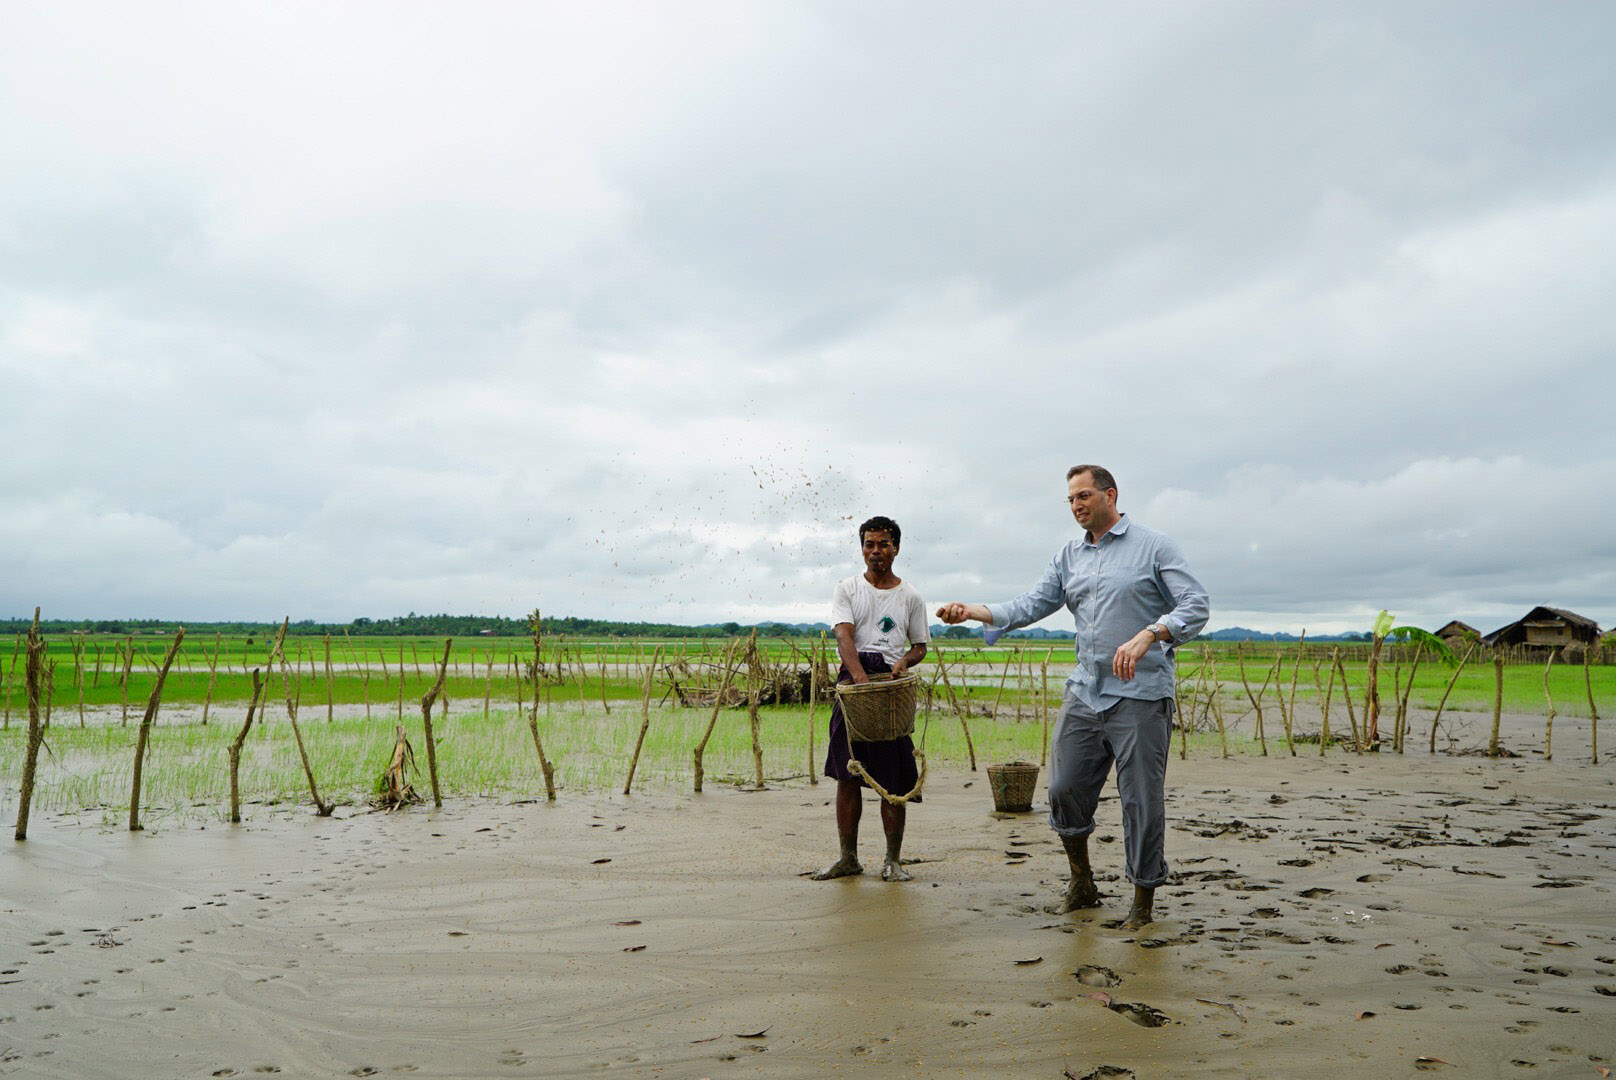 U.S. Ambassador to Burma Derek Mitchell helps a rice farmer, whose crop was destroyed in the July-August floods, to replant rice seeds. Rakhine State, Burma, August 2015.